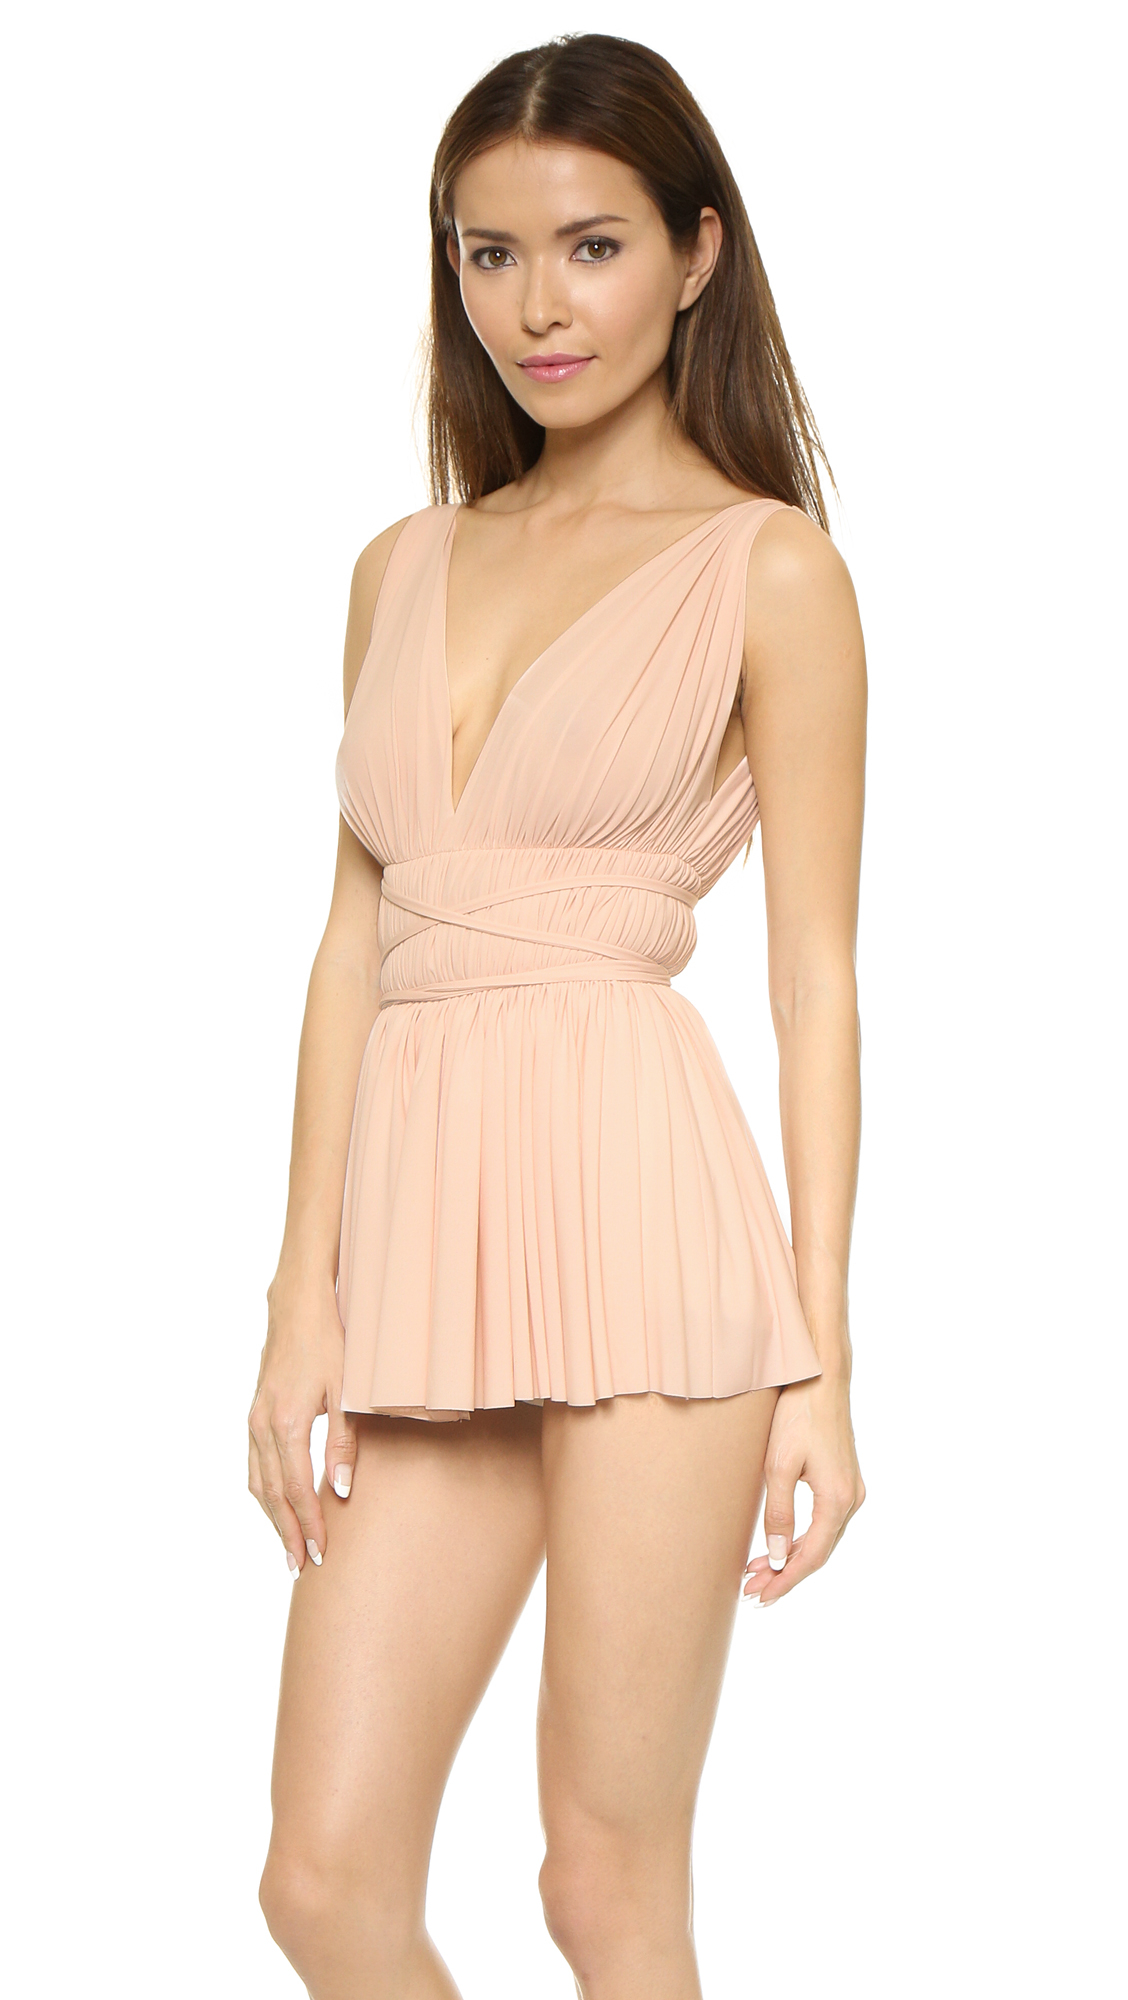 03b3397b33330 Norma Kamali Goddess Swim Dress - Odessa Pink in Pink - Lyst